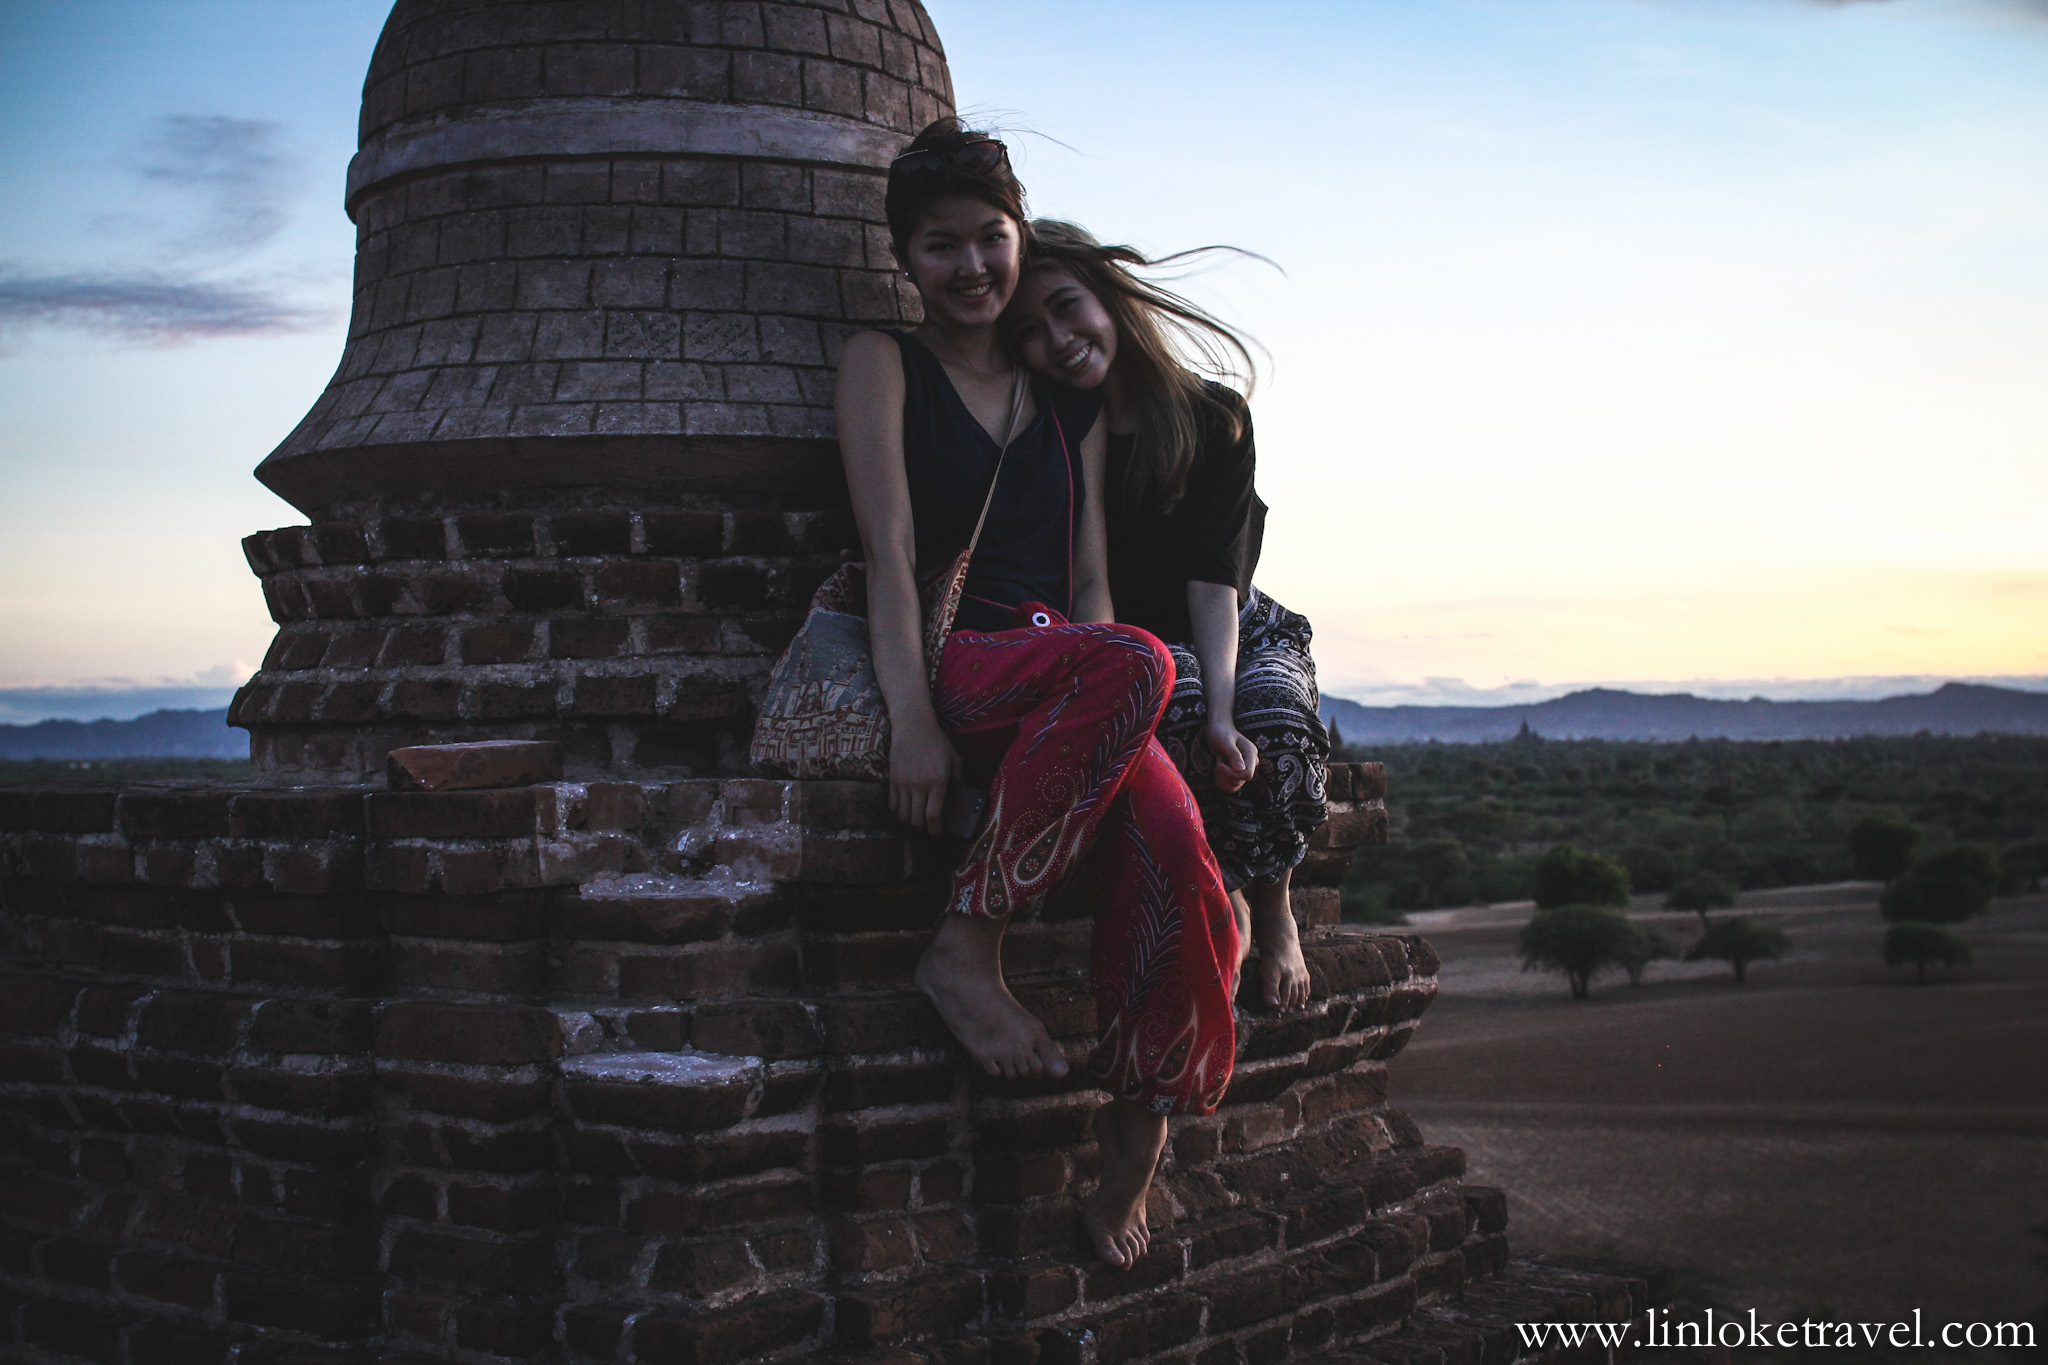 Traveling in Bagan with my bestie, Bao, prior to the pagoda-climbing ban.